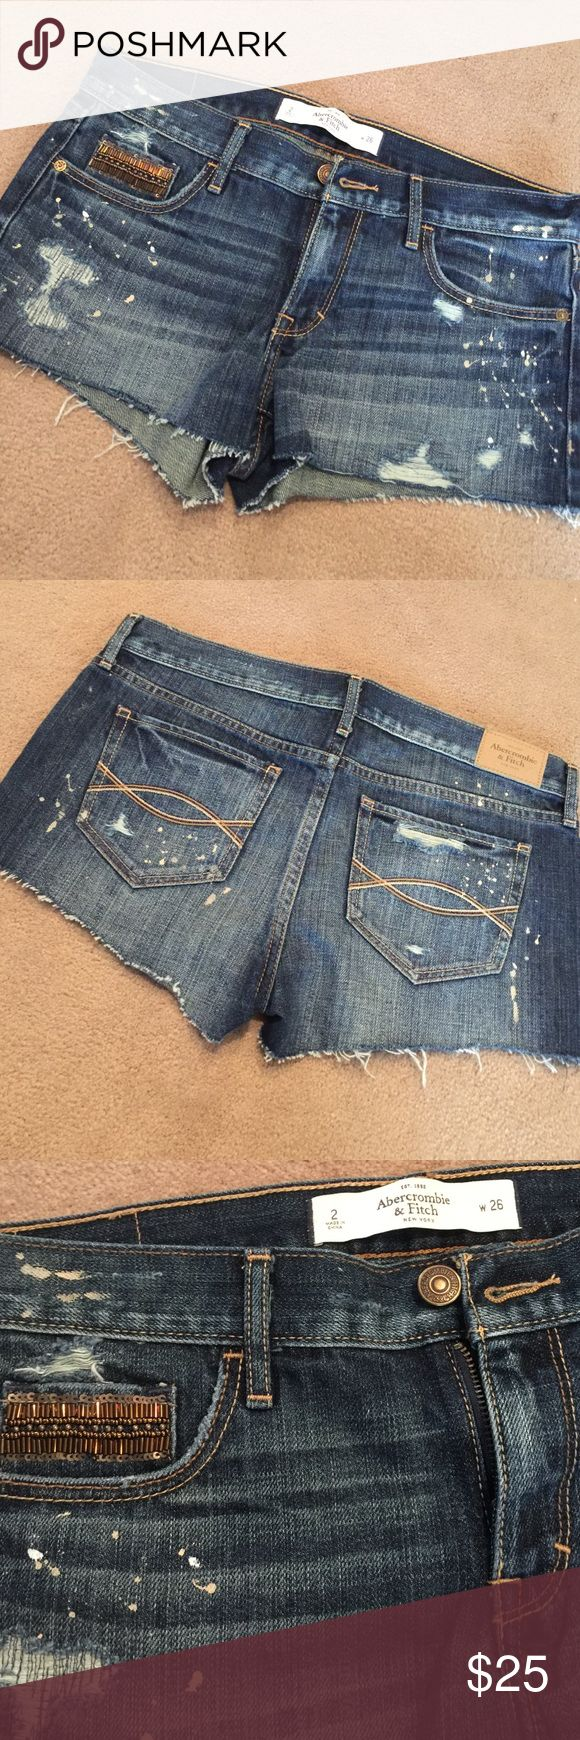 ABERCROMBIE Jean Shorts Size 2 Jean shorts, embellished side front pocket. Splatter design on front and back. Worn one time on vacation in DisneyWorld. Abercrombie & Fitch Shorts Jean Shorts